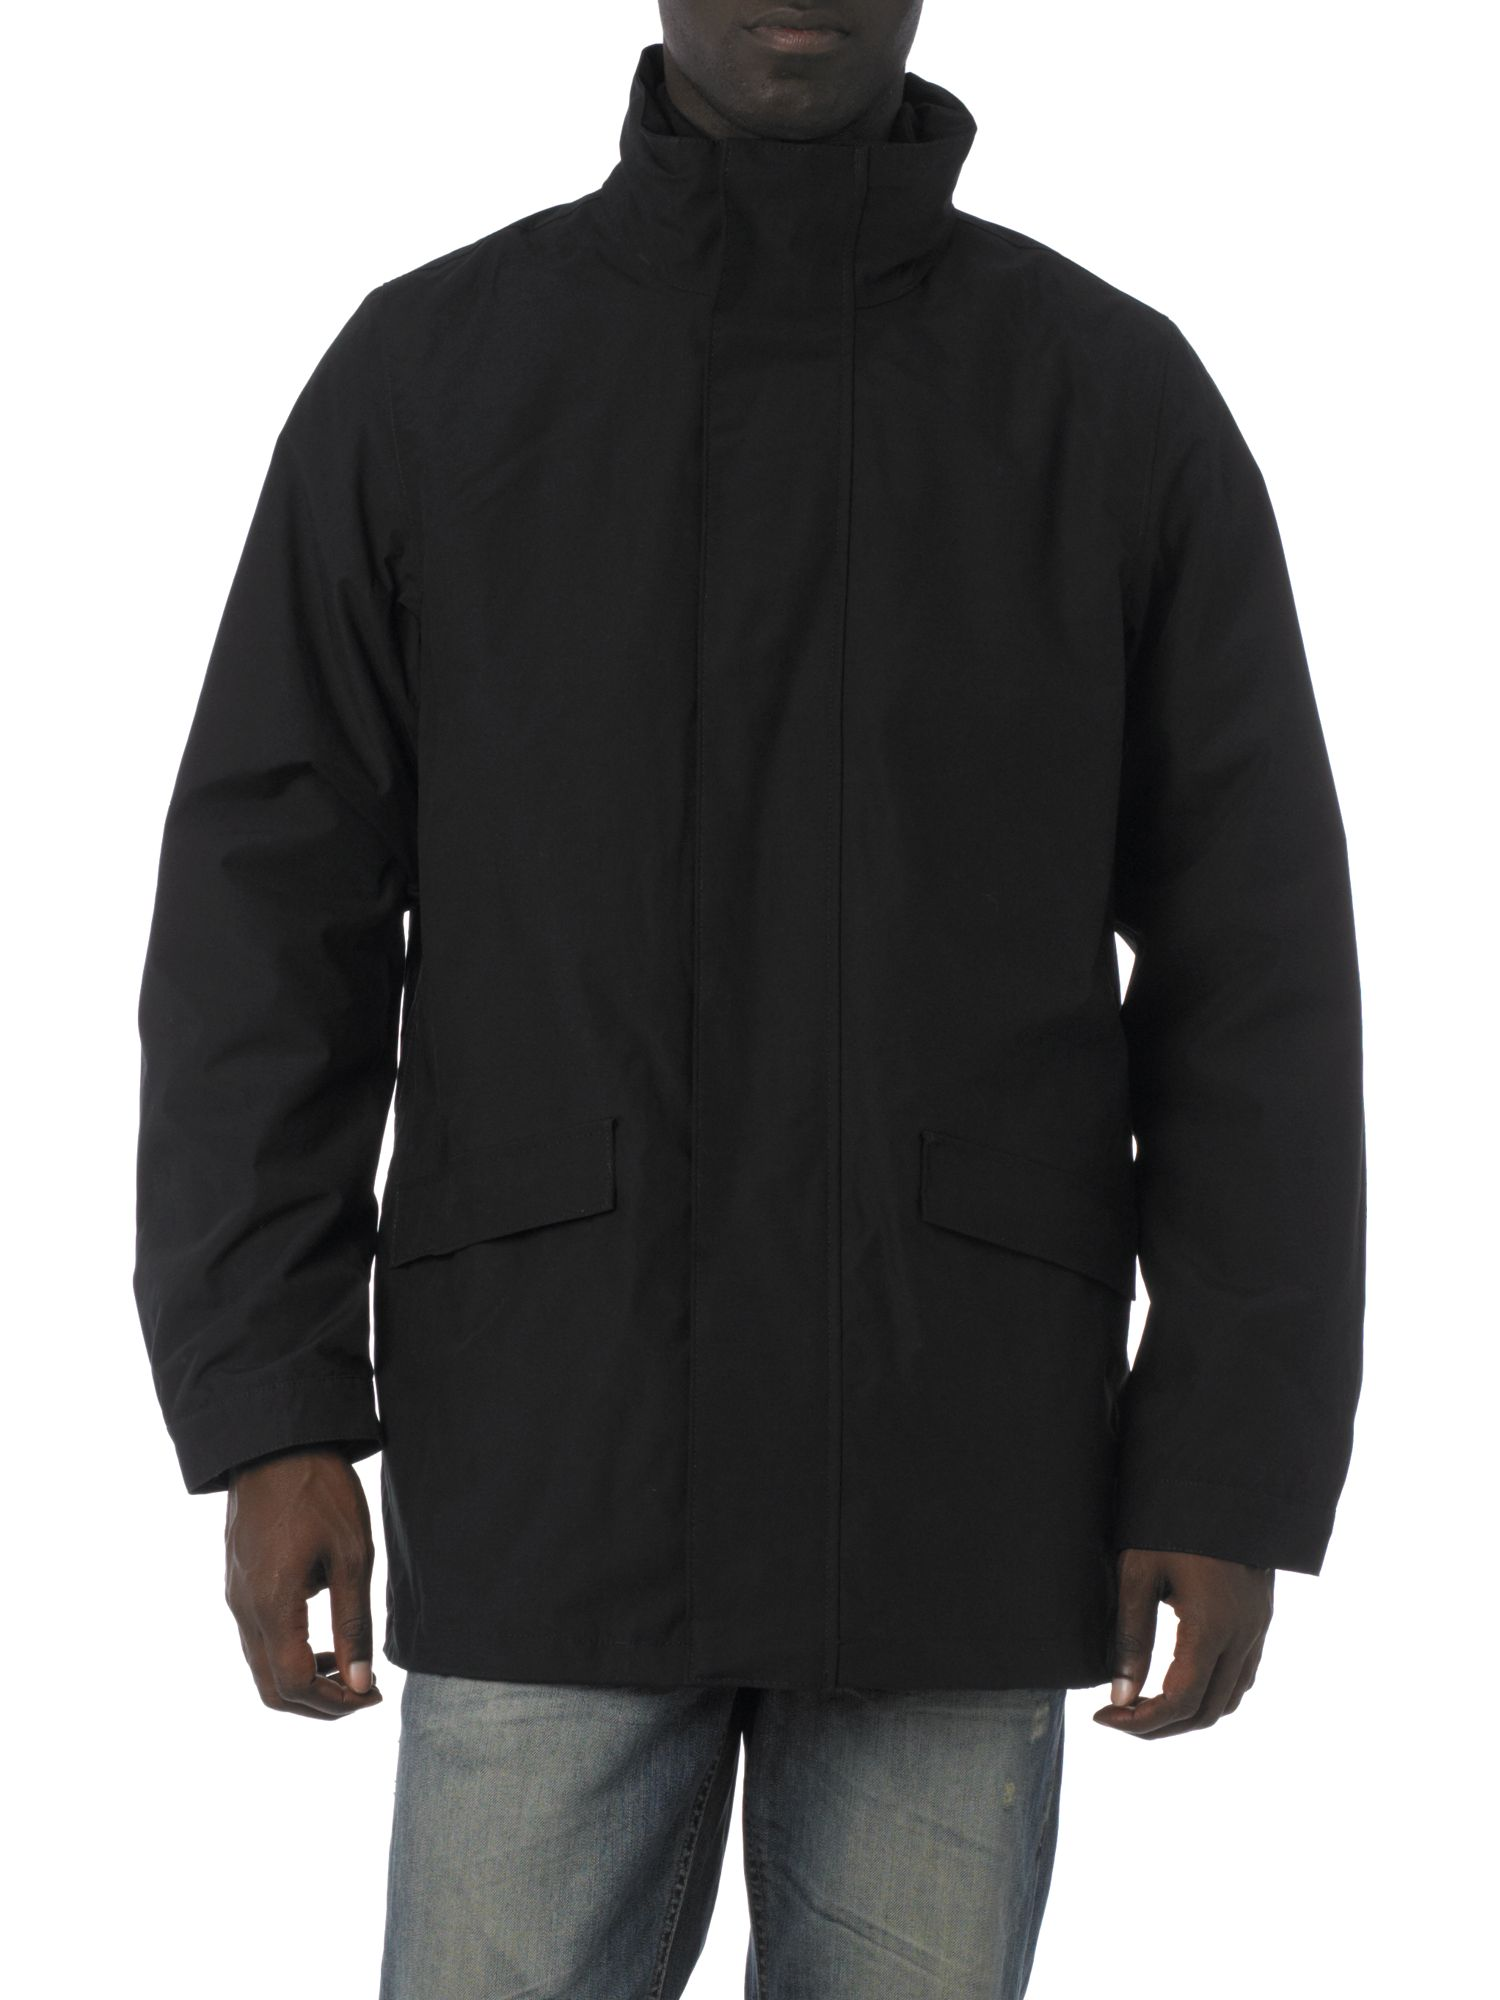 GANT Zip Through Jacket with Removable Inner Fleece in Black for Men